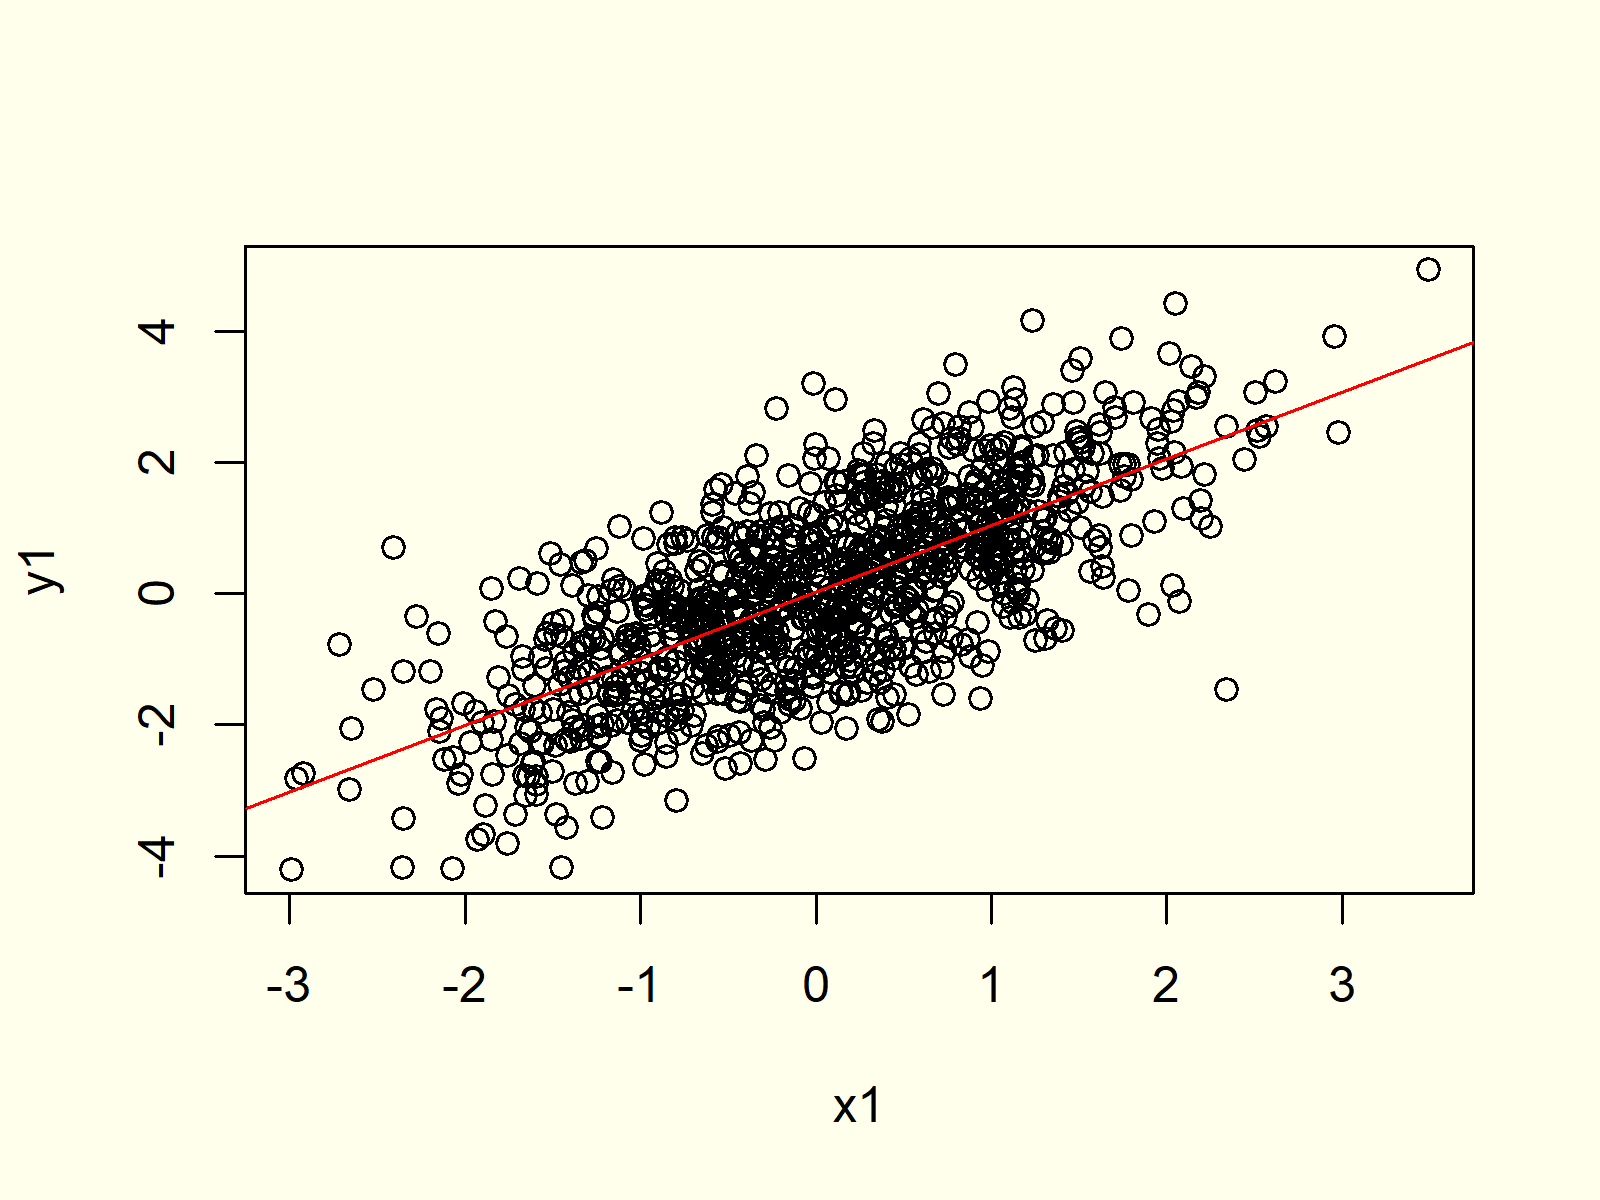 Second example for plot function in r